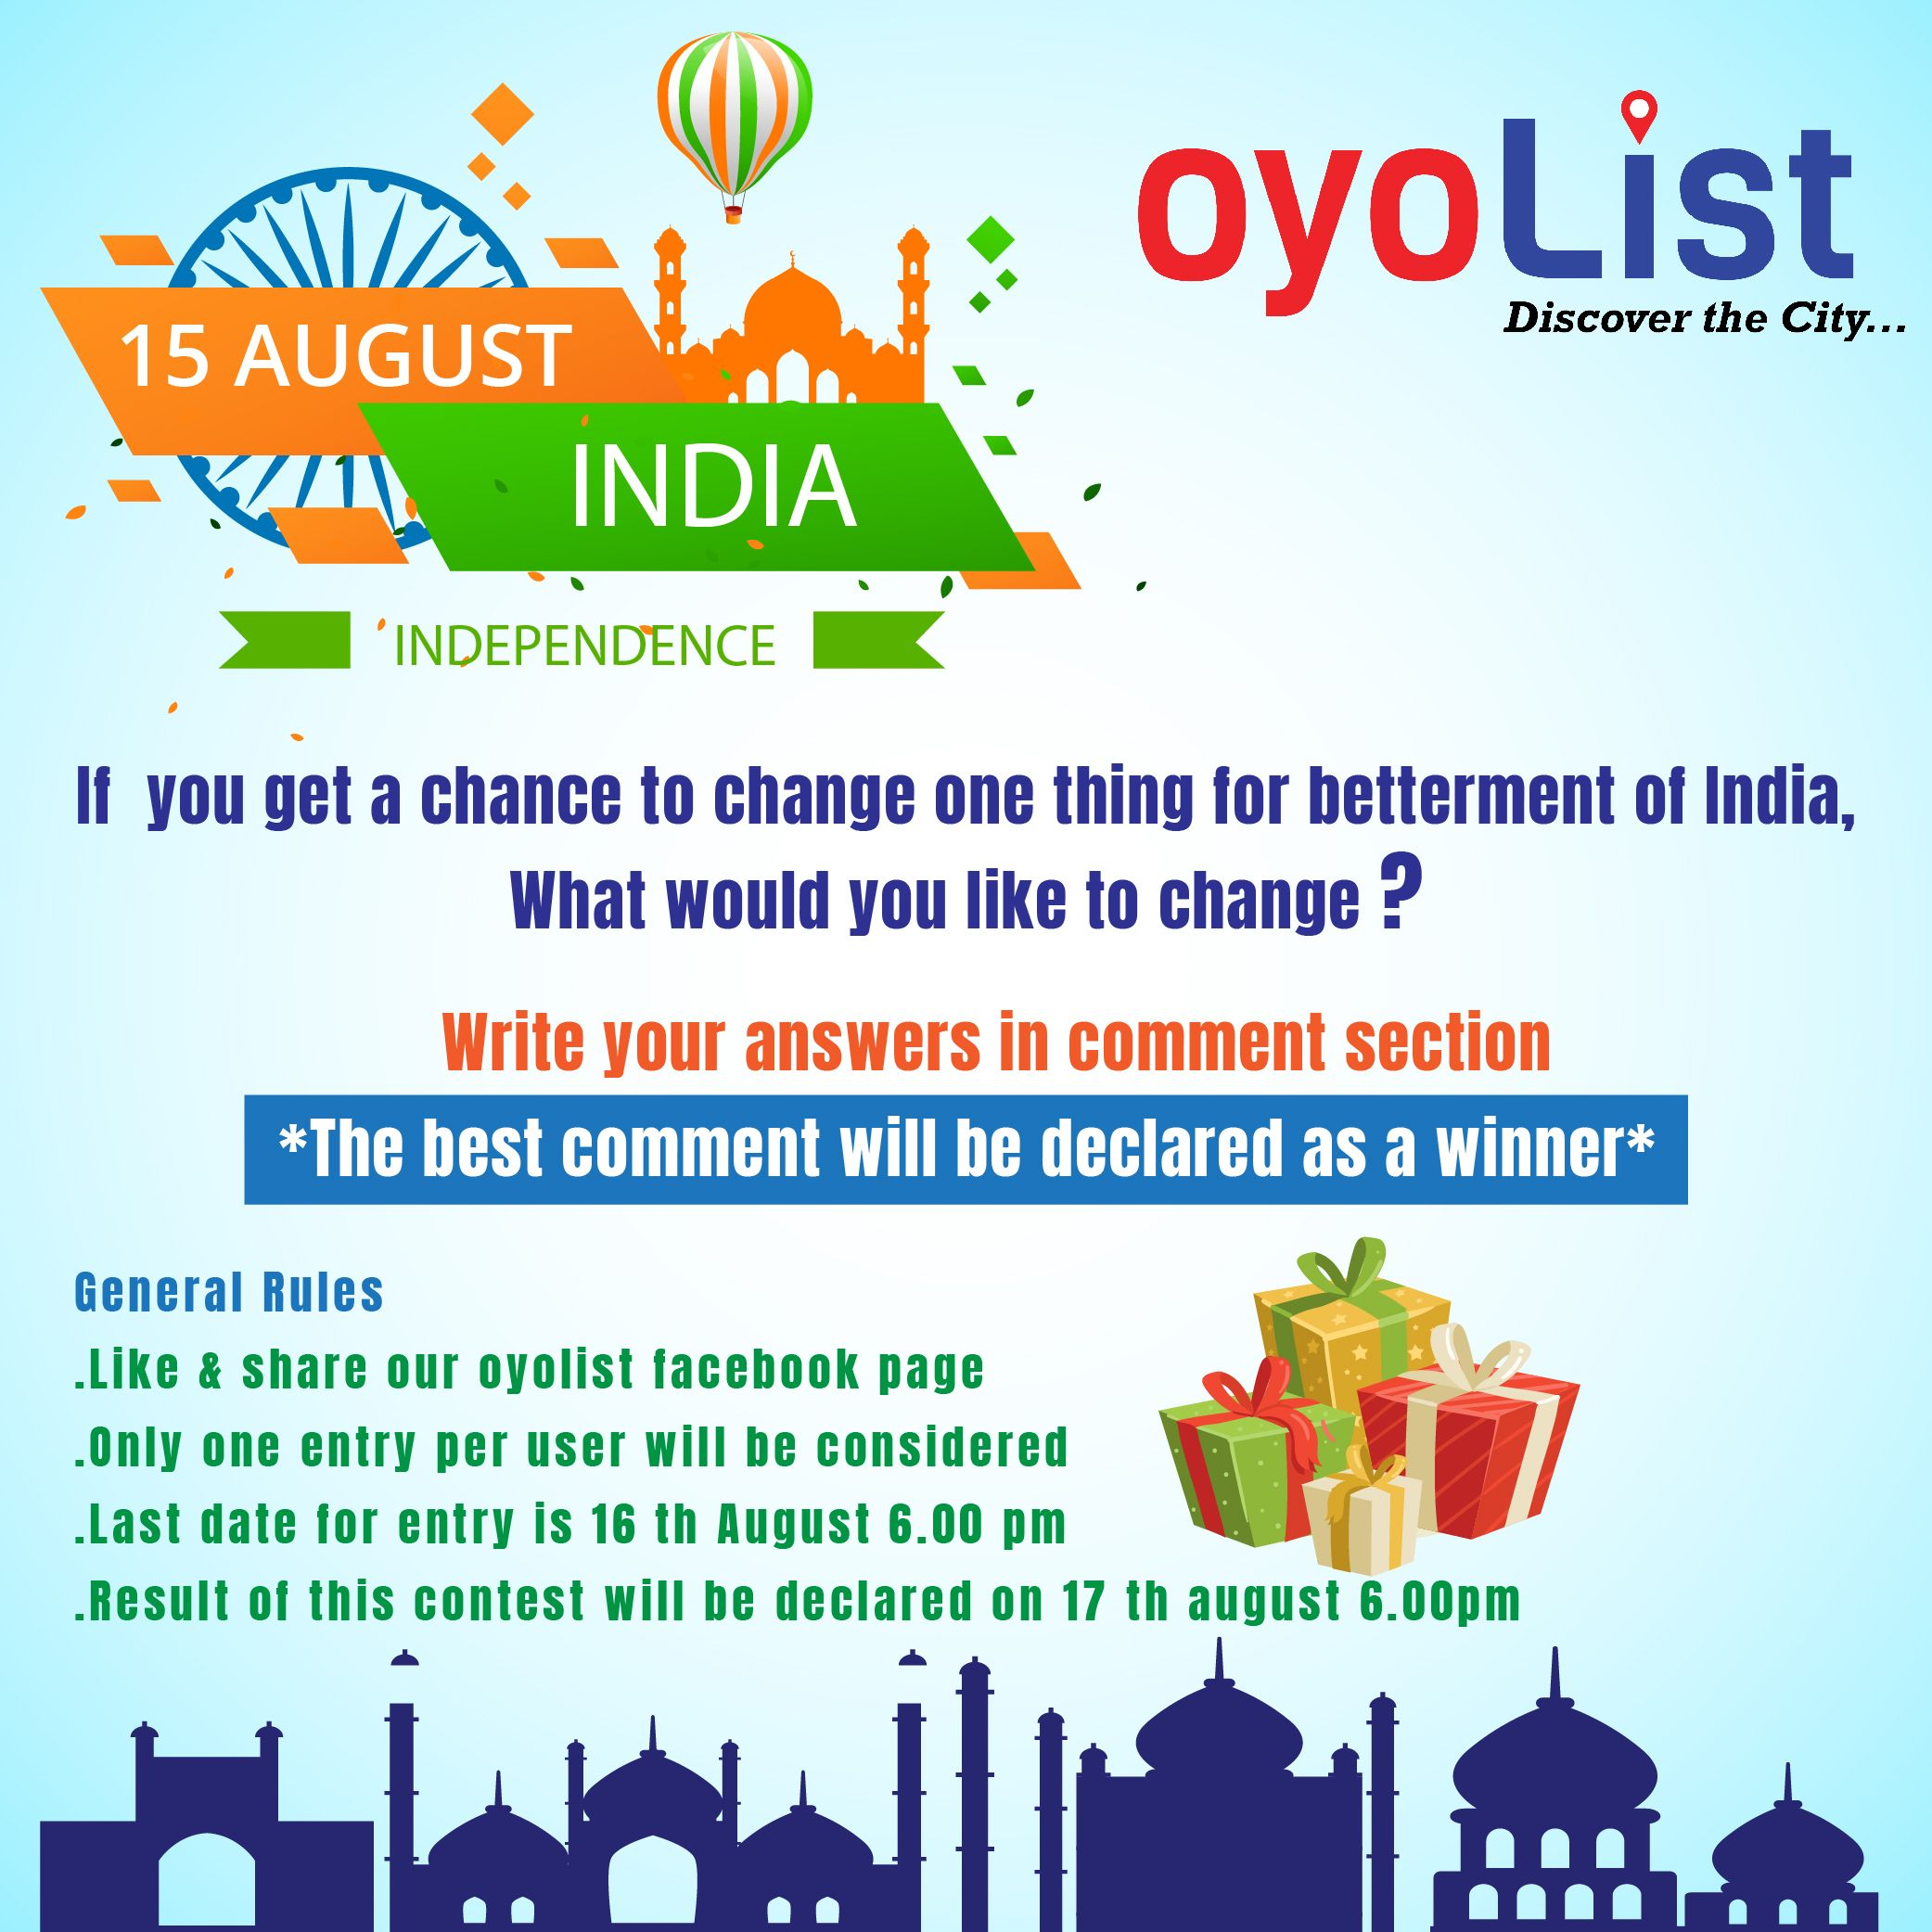 OYOLIST INDEPENDENCE DAY CONTEST IS BACK !! oyolist